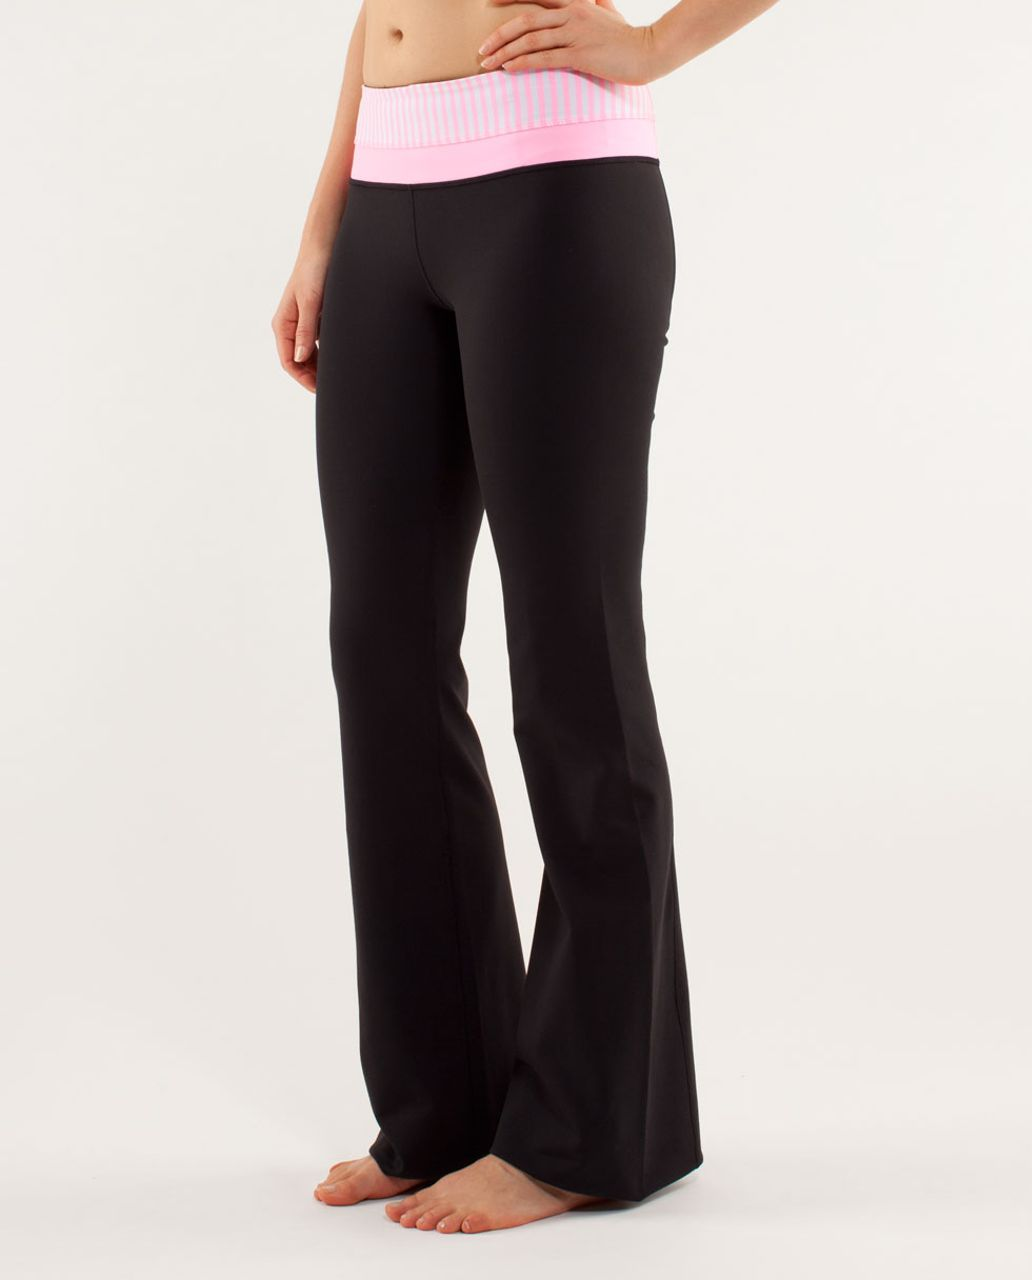 Lululemon Groove Pant *New (Tall) - Black / Classic Stripe White Pink Shell / Pink Shell